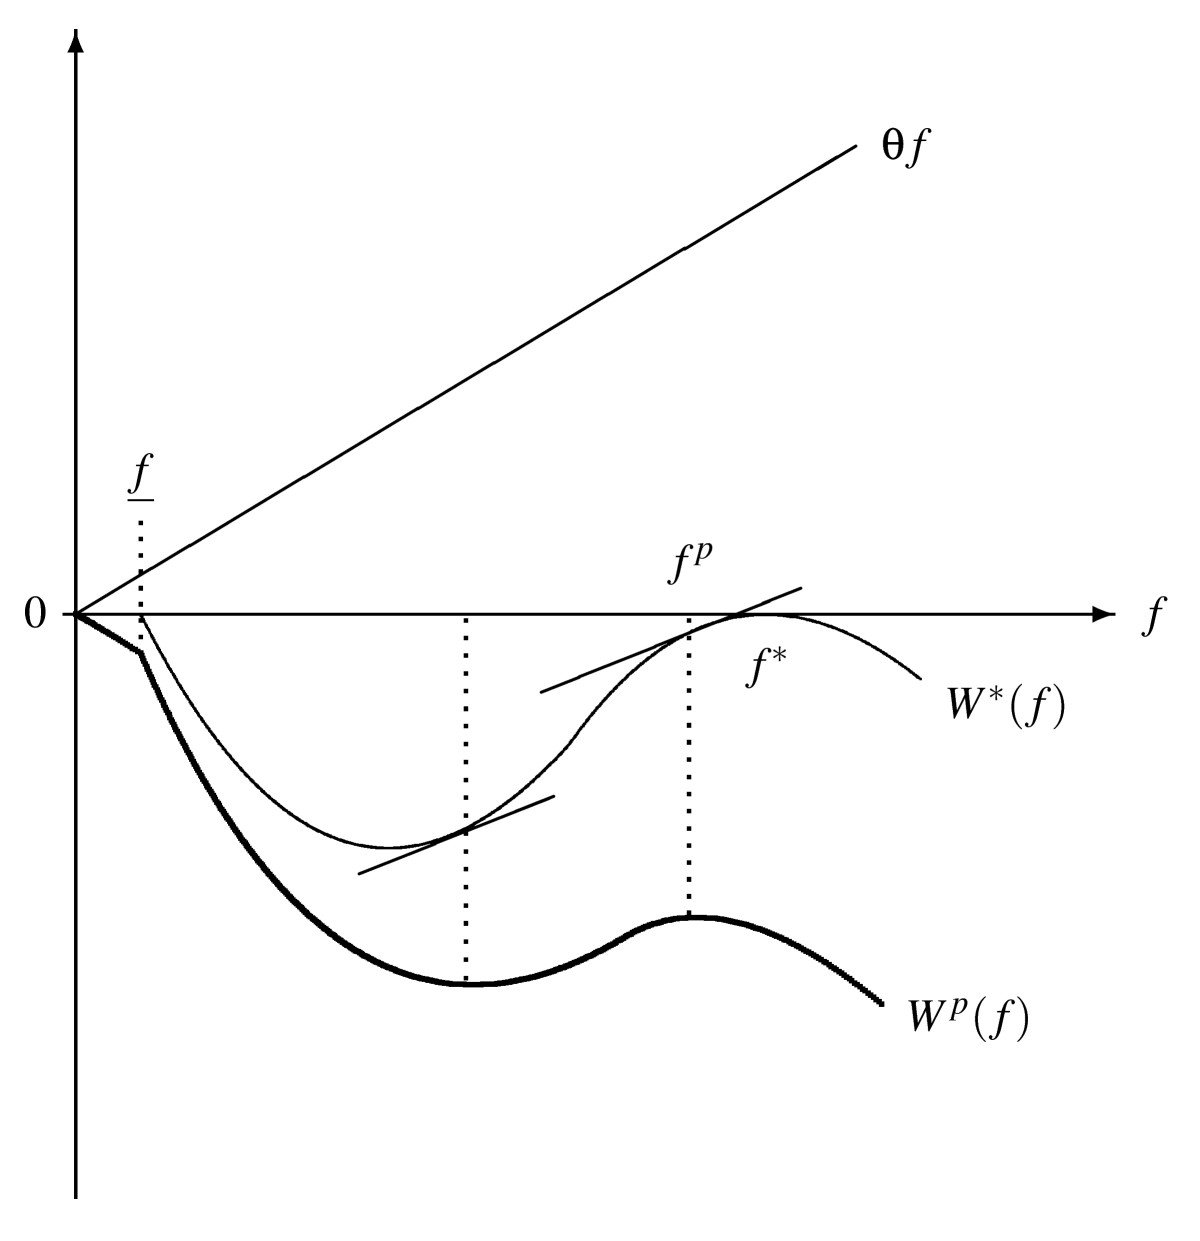 http://static-content.springer.com/image/art%3A10.1186%2F2191-1991-1-14/MediaObjects/13561_2011_Article_15_Fig2_HTML.jpg